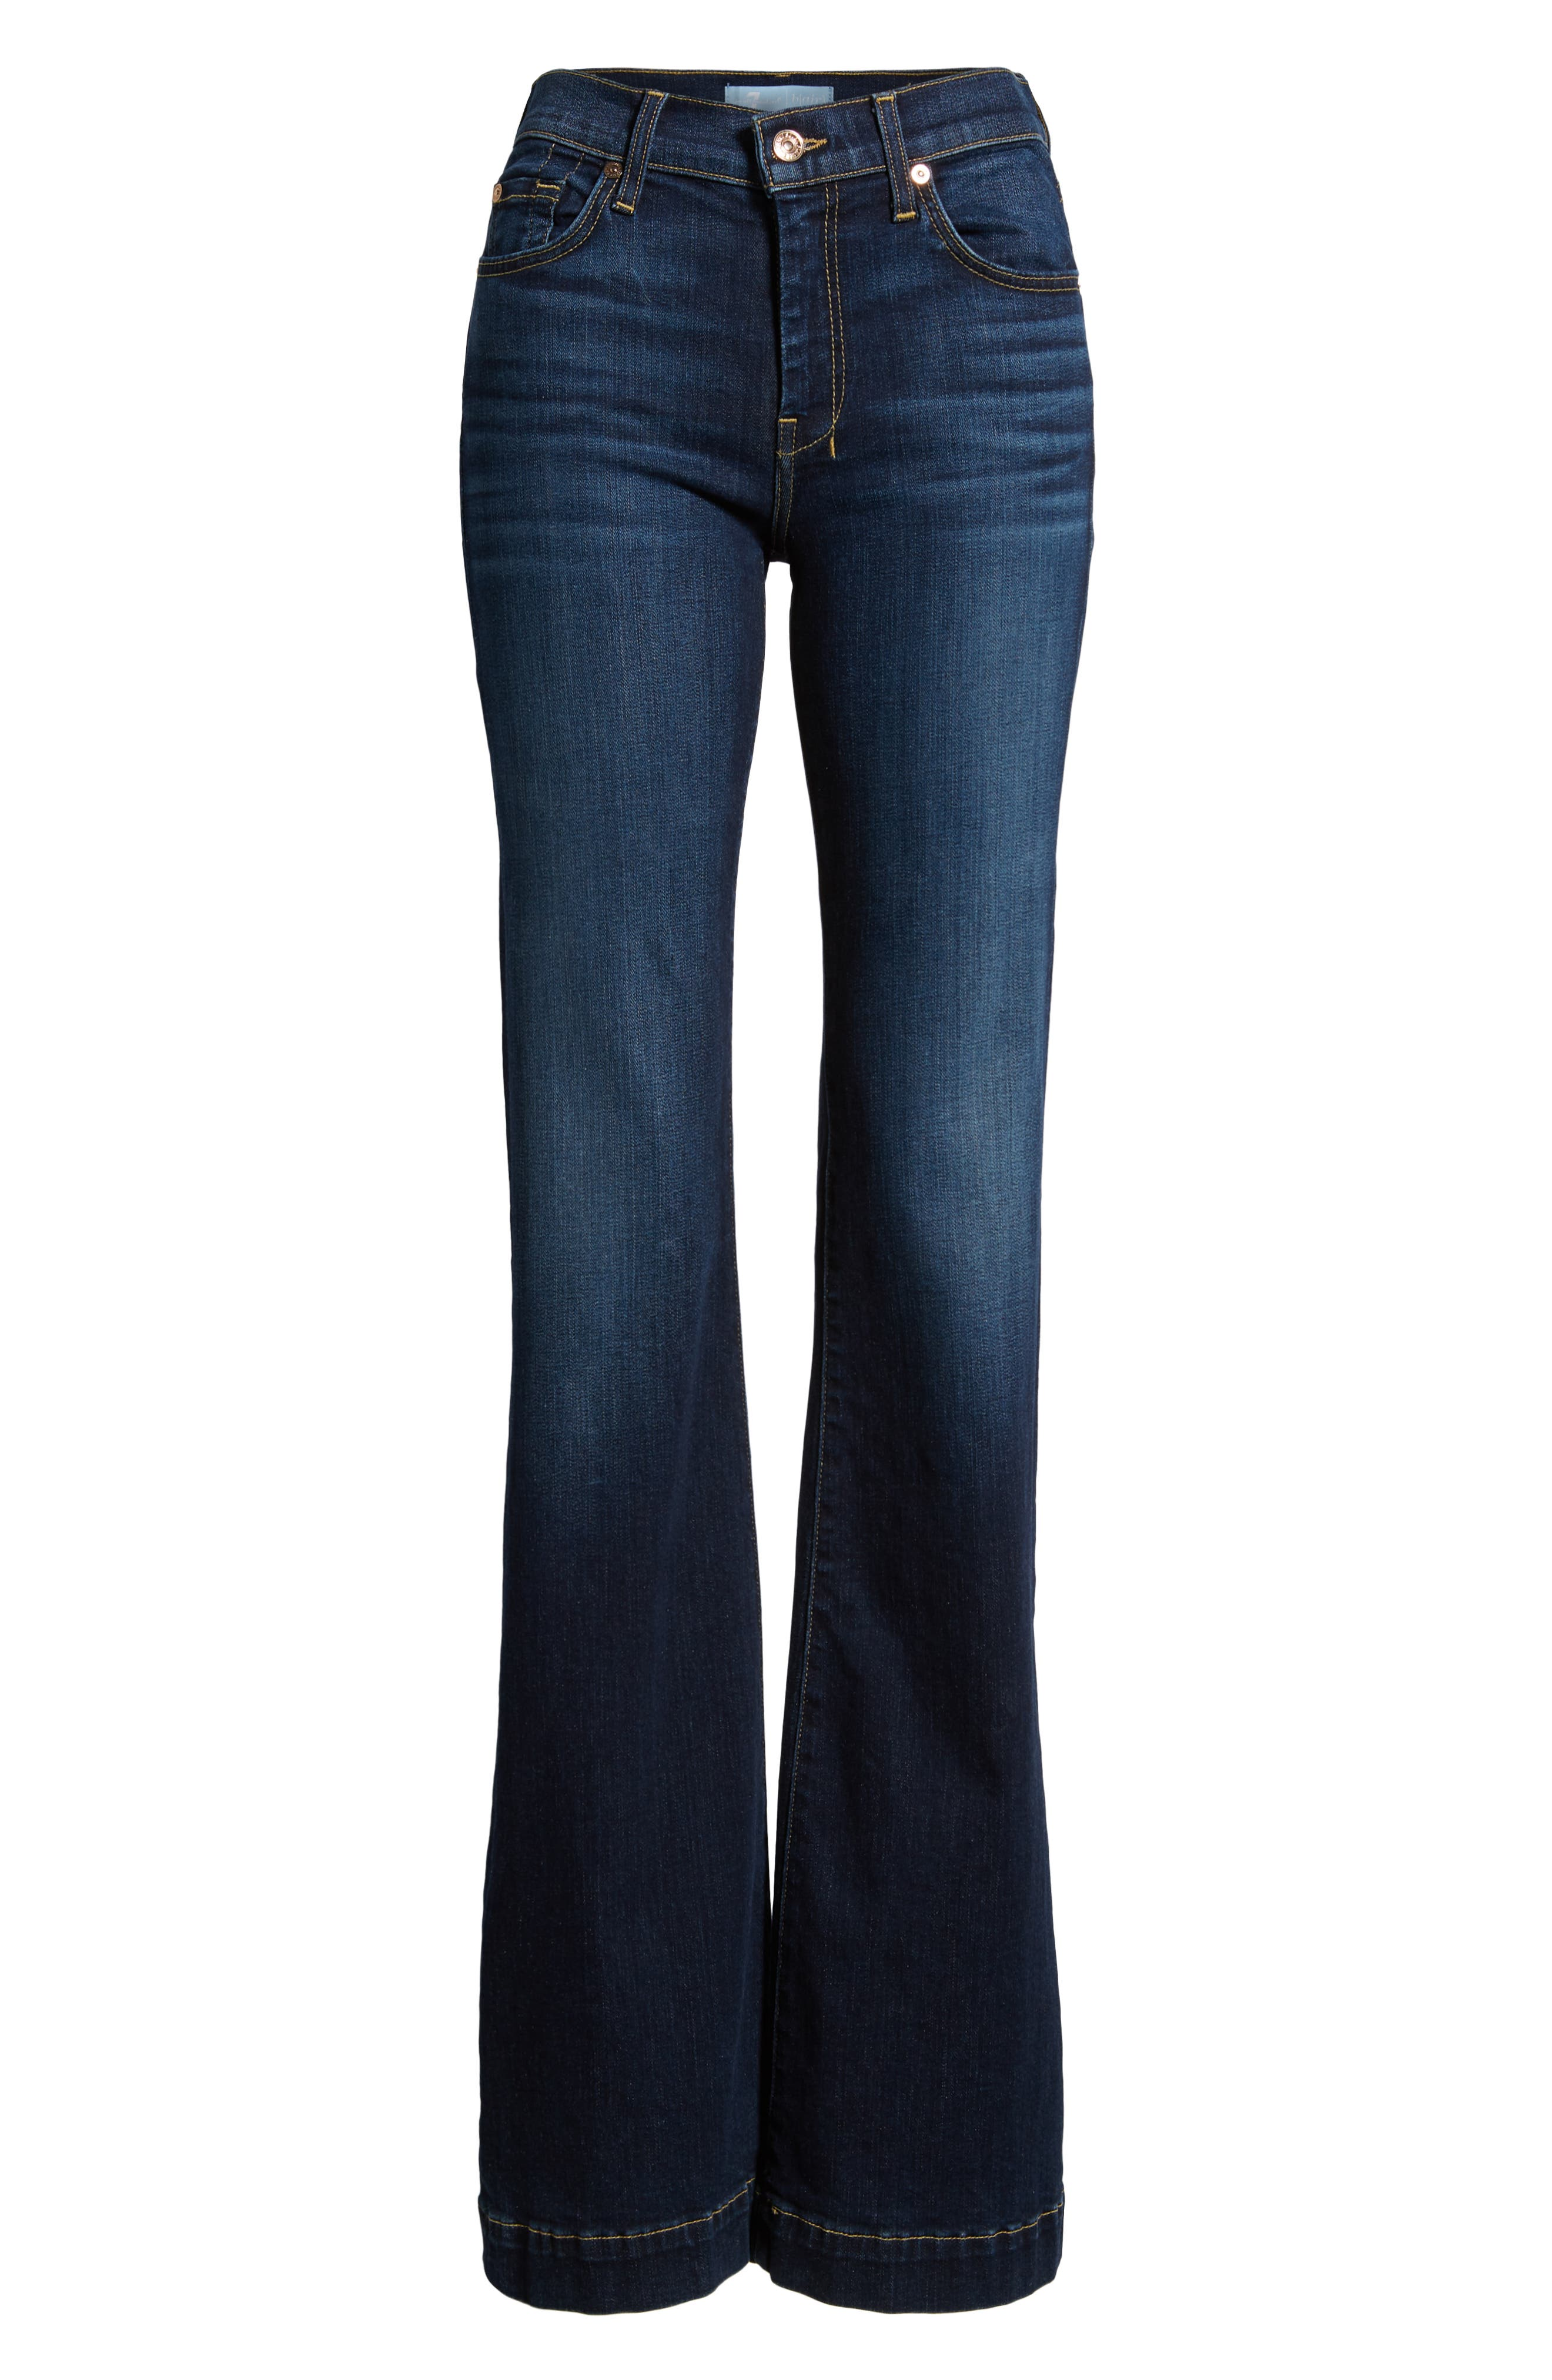 7 FOR ALL MANKIND<SUP>®</SUP>, Dojo Wide Leg Jeans, Alternate thumbnail 7, color, AUTHENTIC FATE